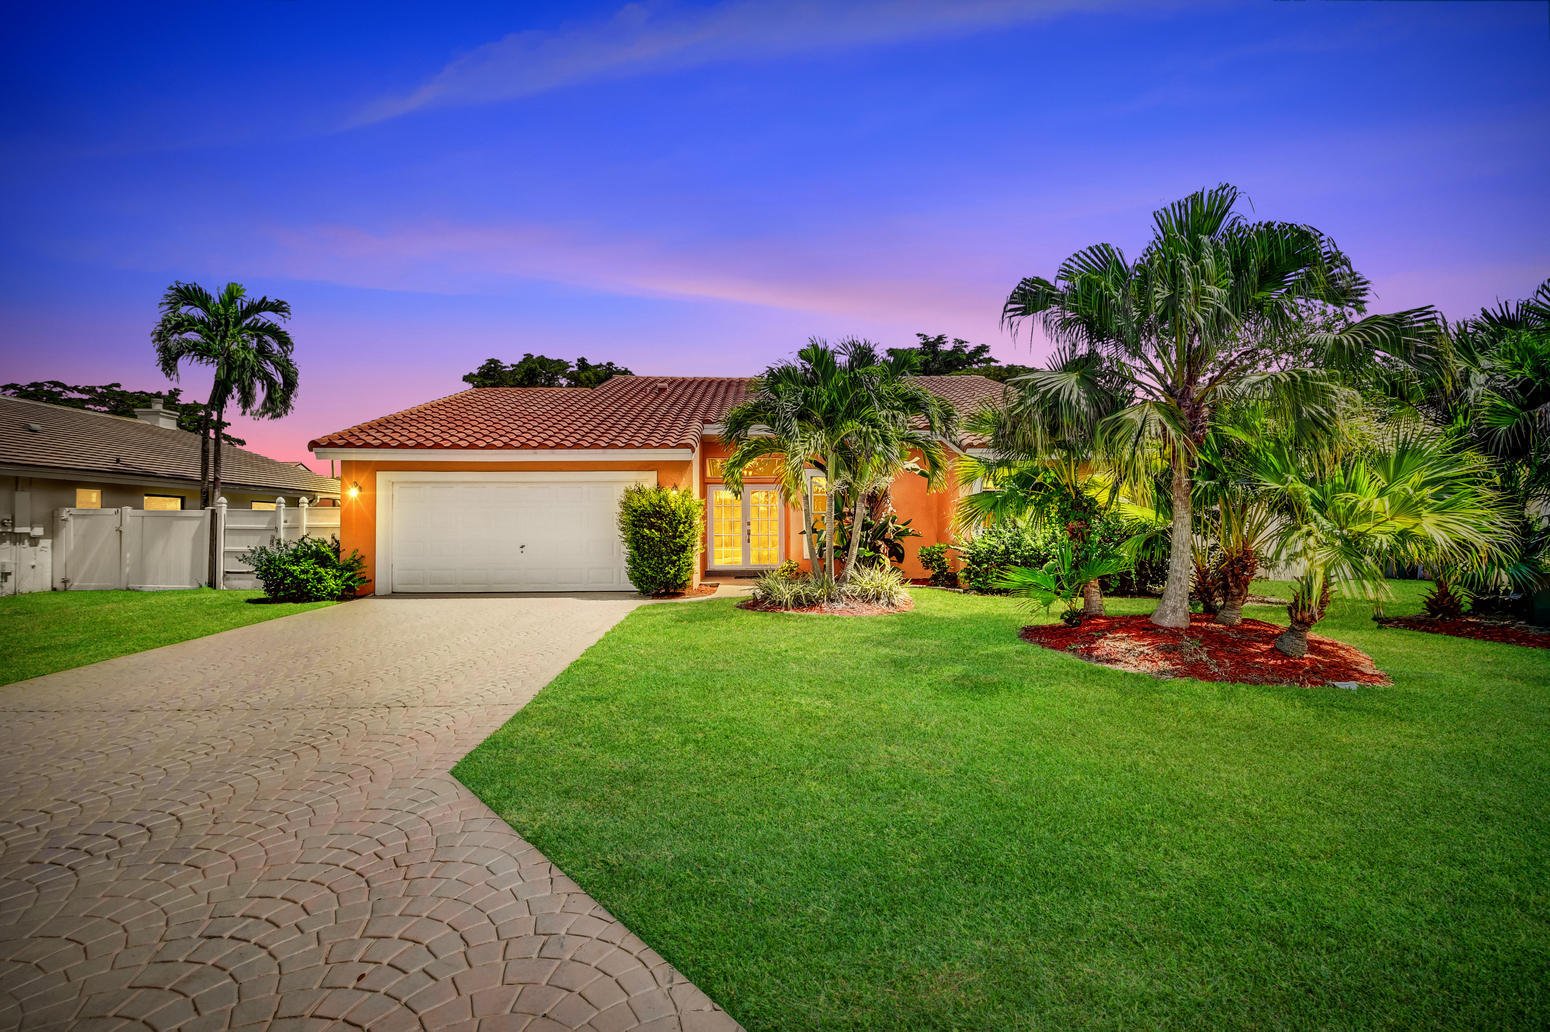 Home for sale in Boca Lake Estates Boca Raton Florida